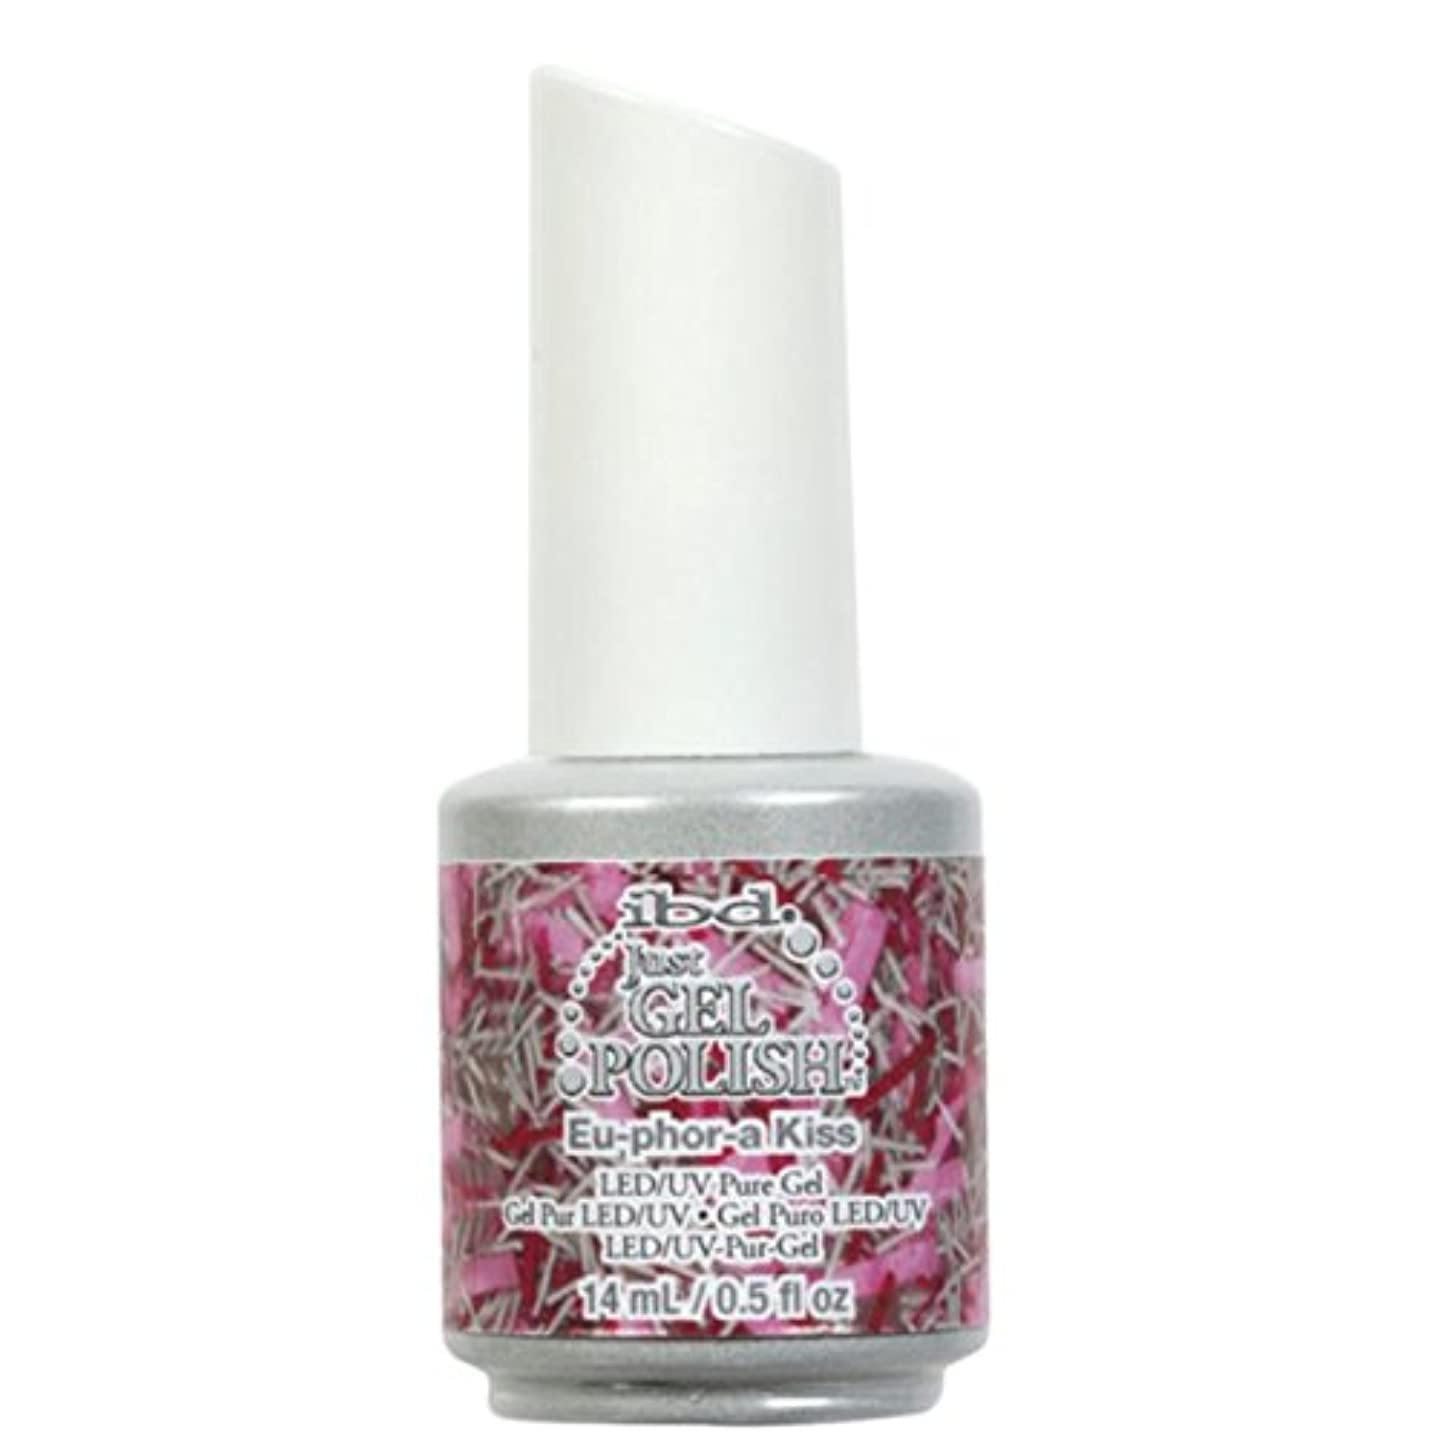 手段北東コンテストibd Just Gel Nail Polish - Eu-Phor-A Kiss - 14ml / 0.5oz